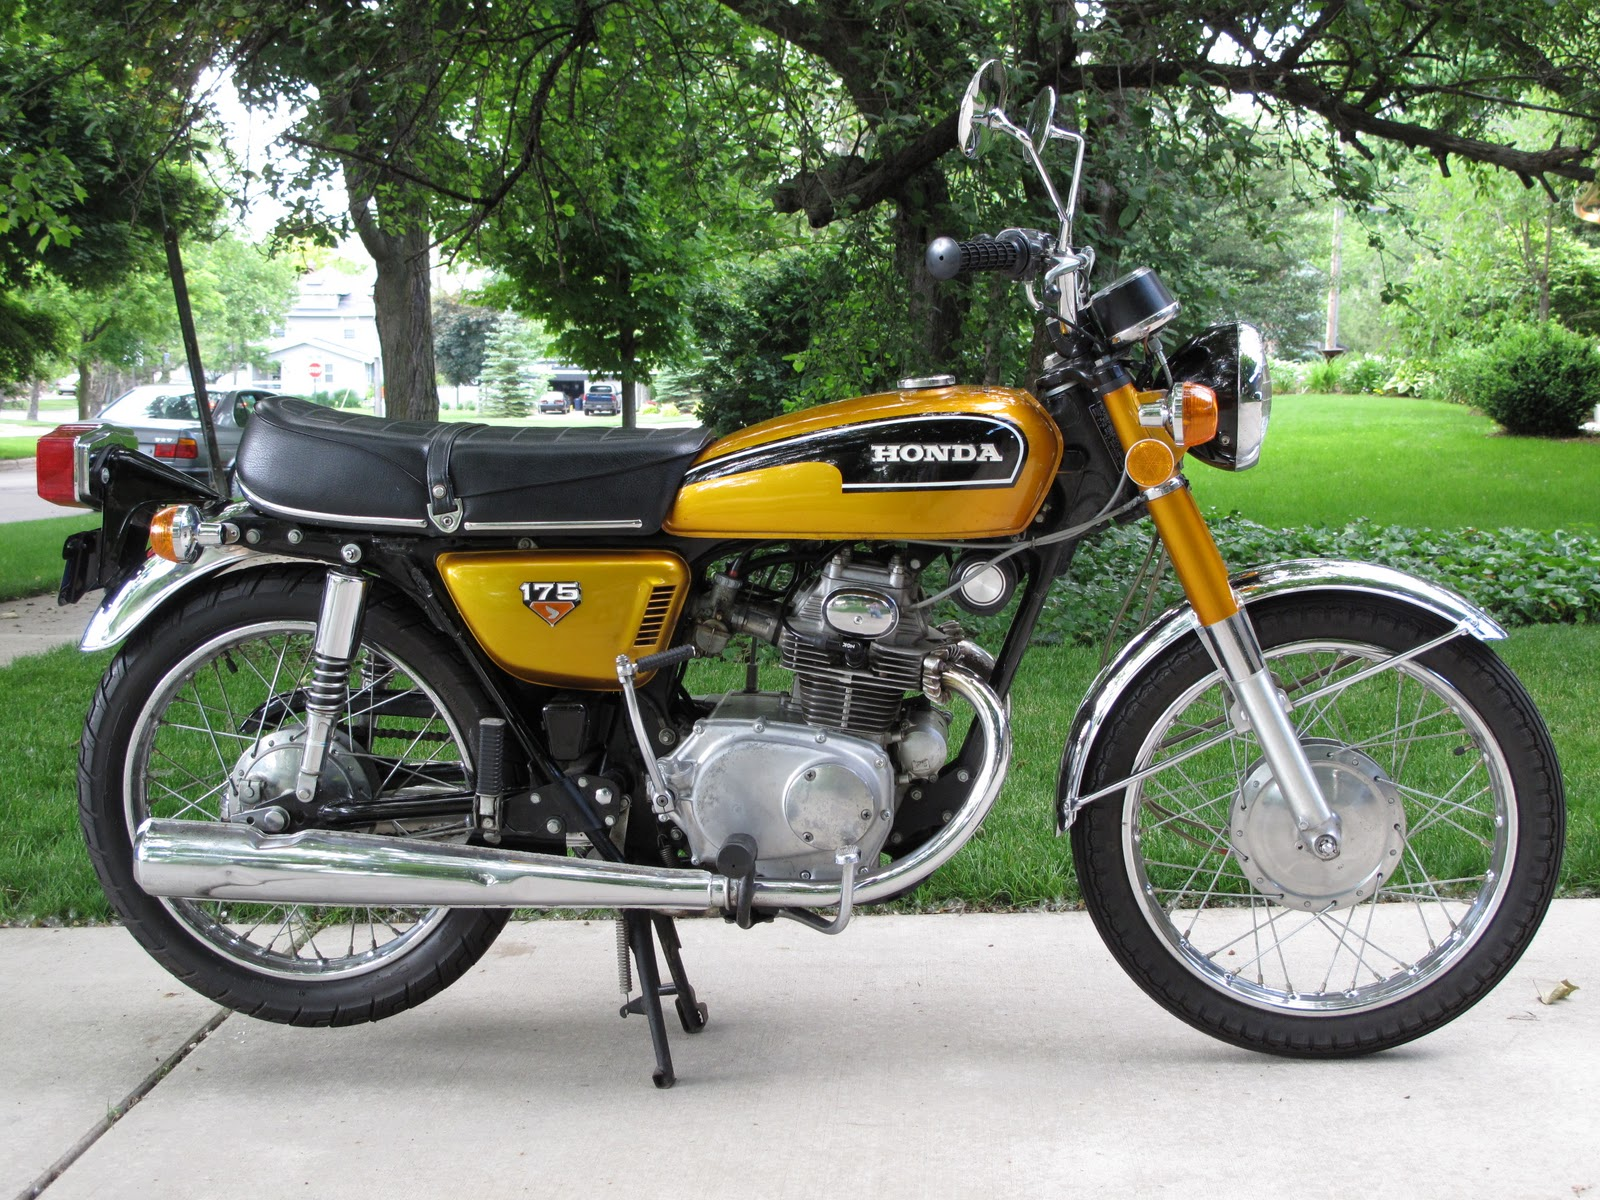 1971 Honda Cl175 Wiring Diagram Search For Diagrams Cb175 1972 Pictures To Pin On Pinterest Pinsdaddy Cafe Bike